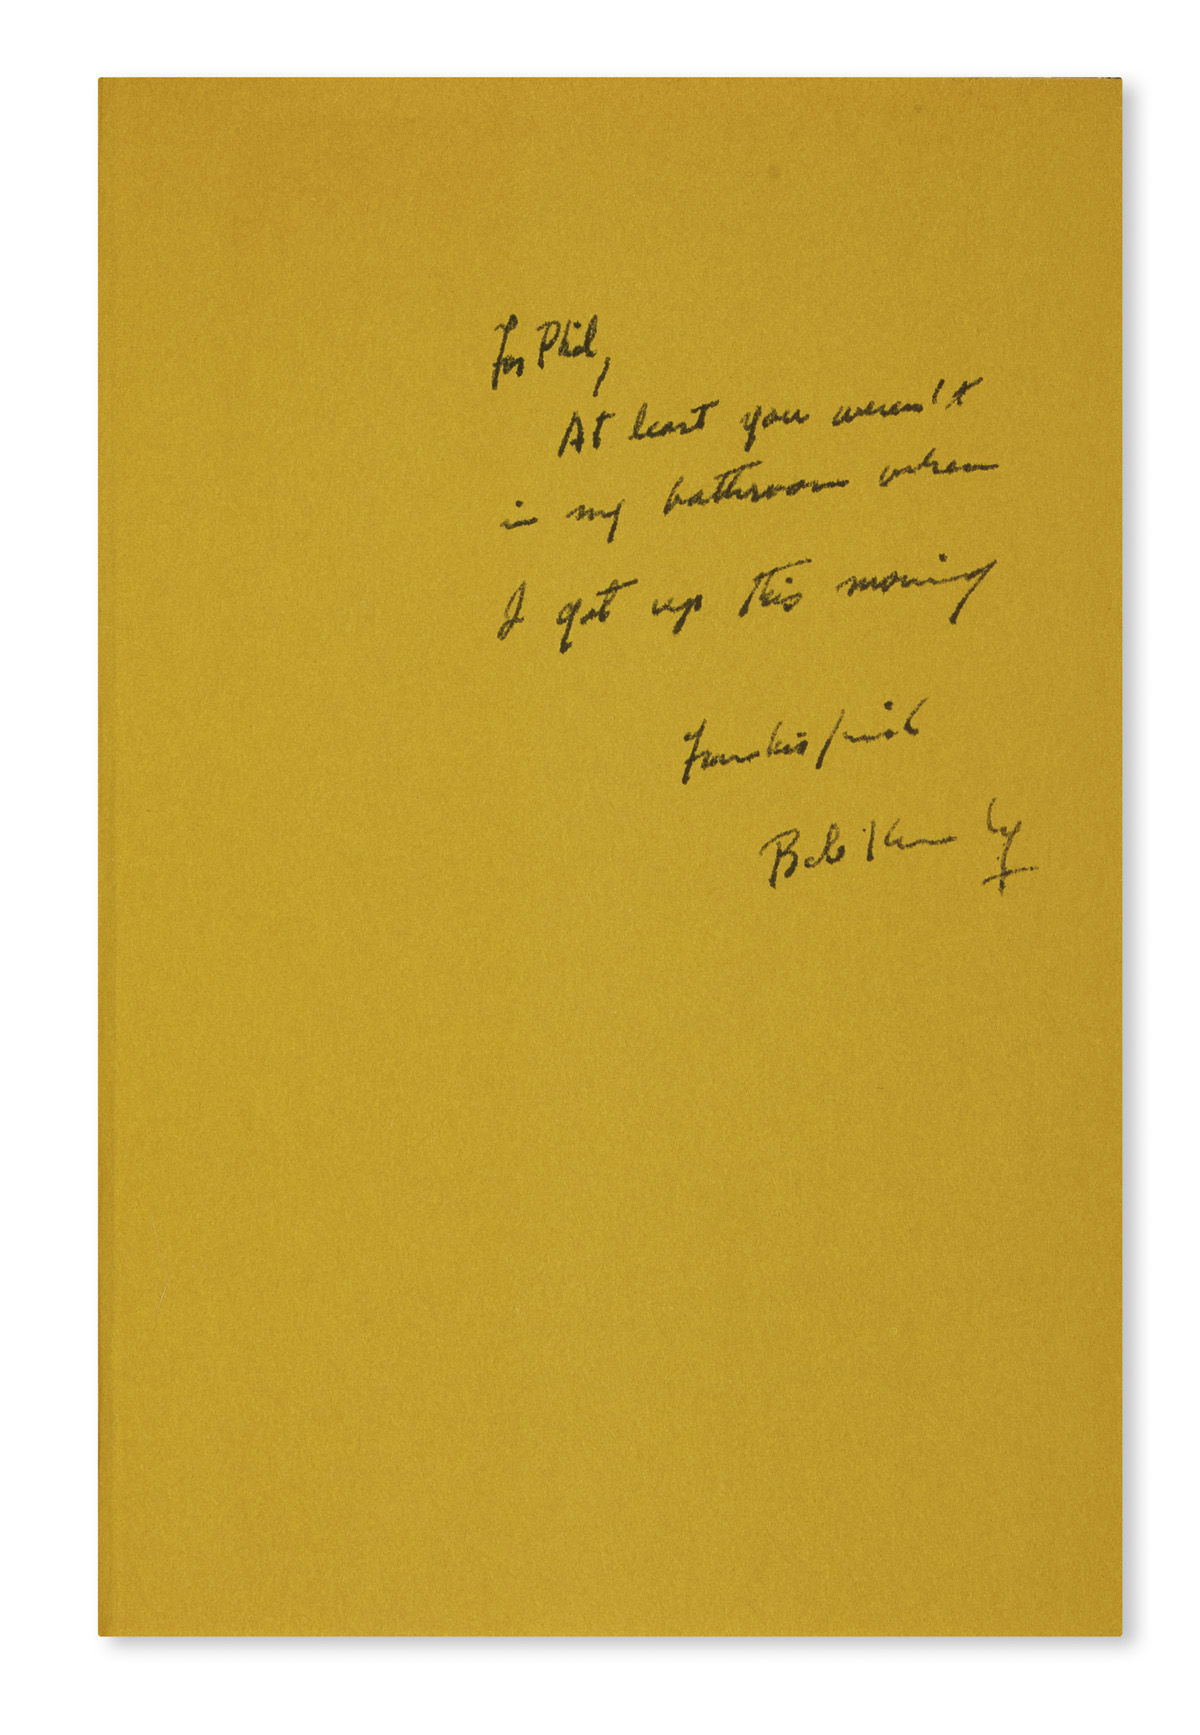 KENNEDY-ROBERT-F-The-Pursuit-of-Justice-Inscribed-and-Signed